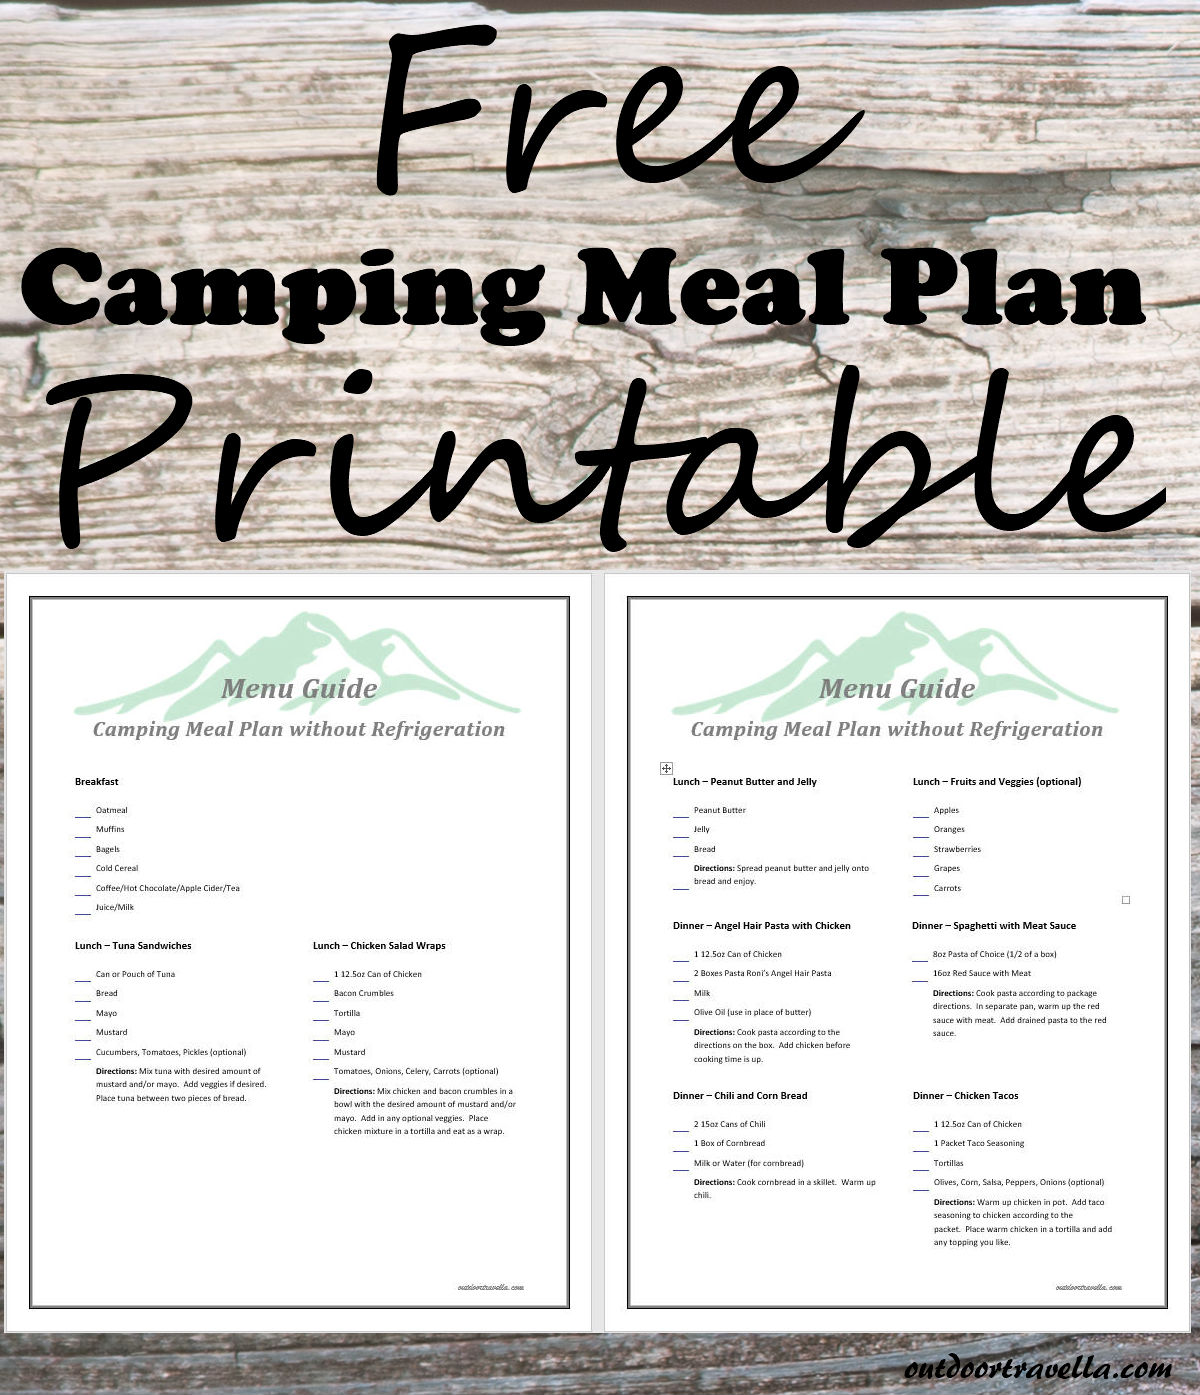 It's just a picture of Zany Camping Food List Printable